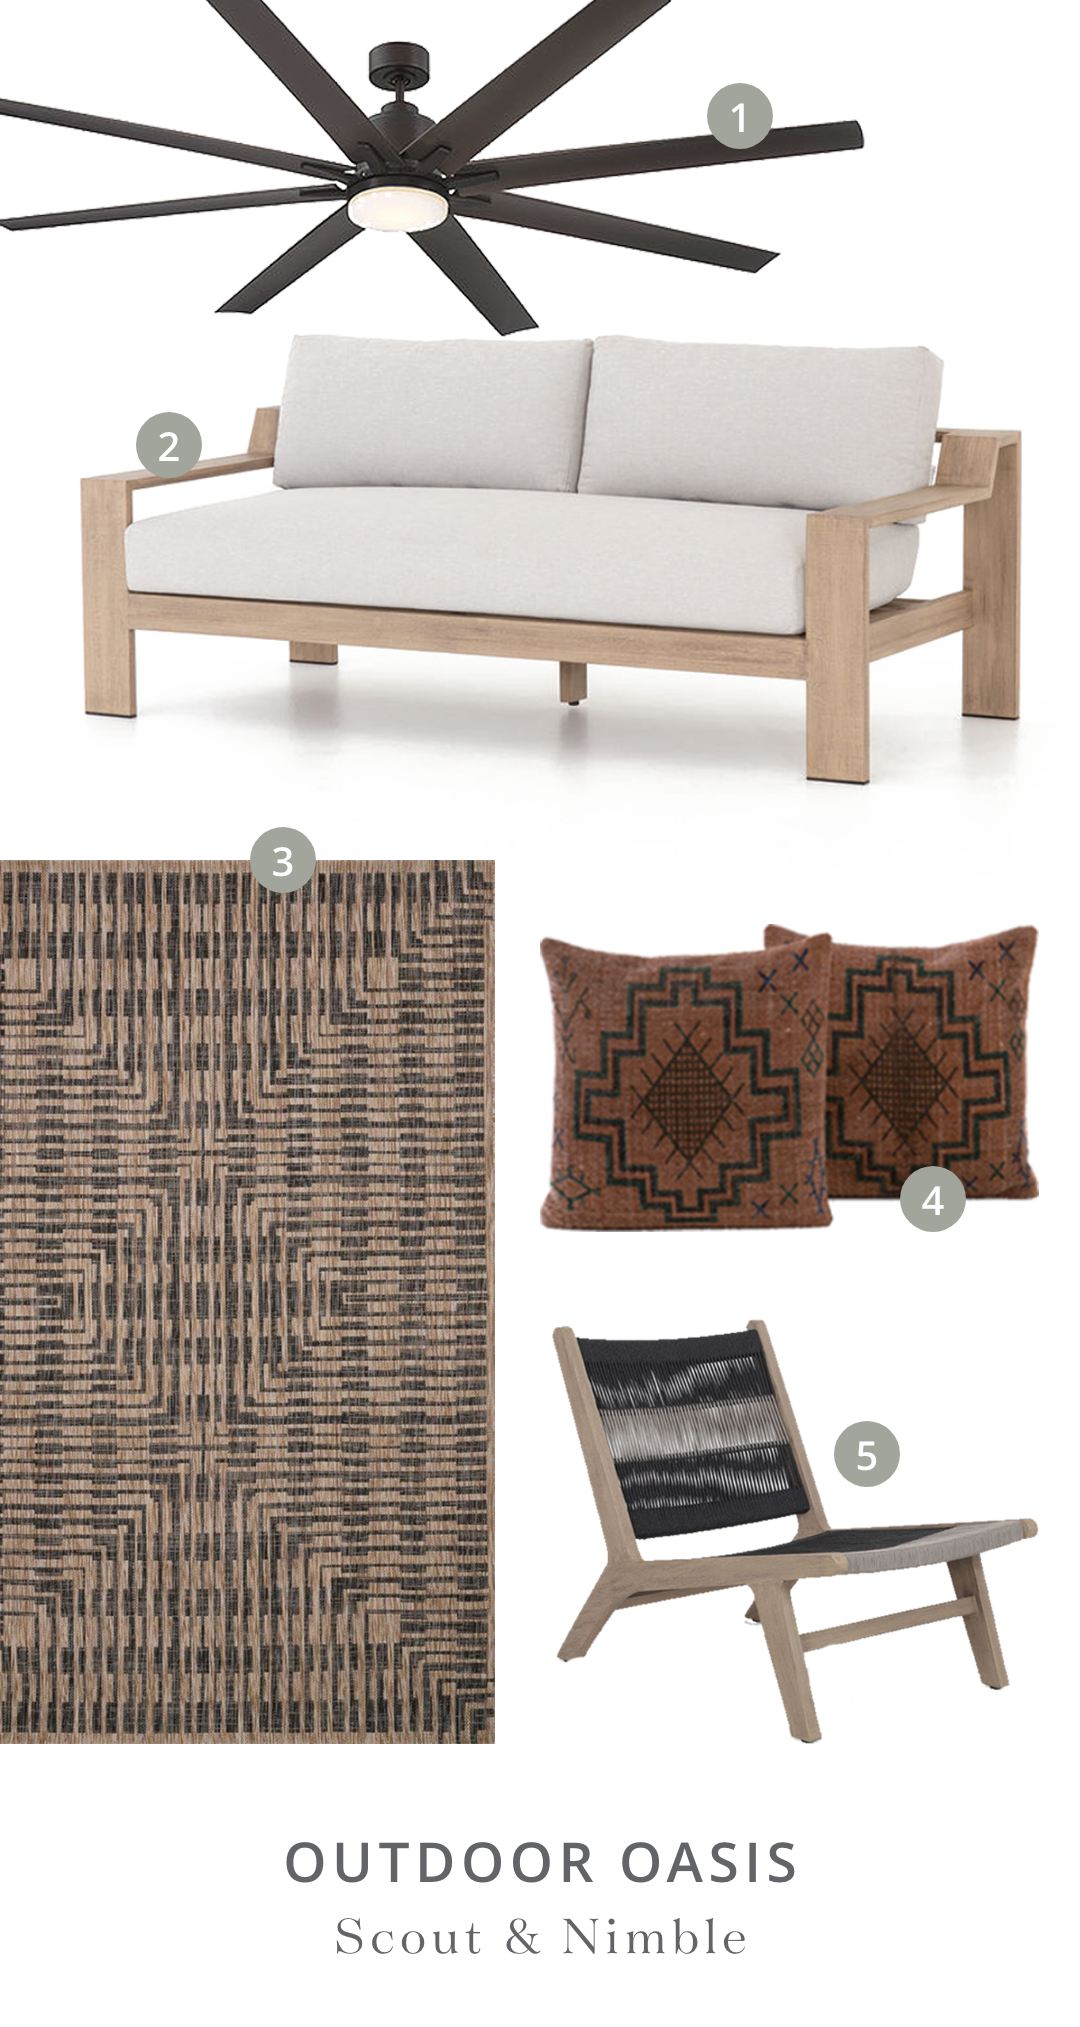 "Shop the Look  | 1.  Bluffton 72"" 8-Blade Ceiling Fan  2.  Monterey Outdoor Sofa  3.  Isle Brown/Black Rug  4.  Tribal Print Rust Pillow, set of 2  5.  Julian Outdoor Chair"